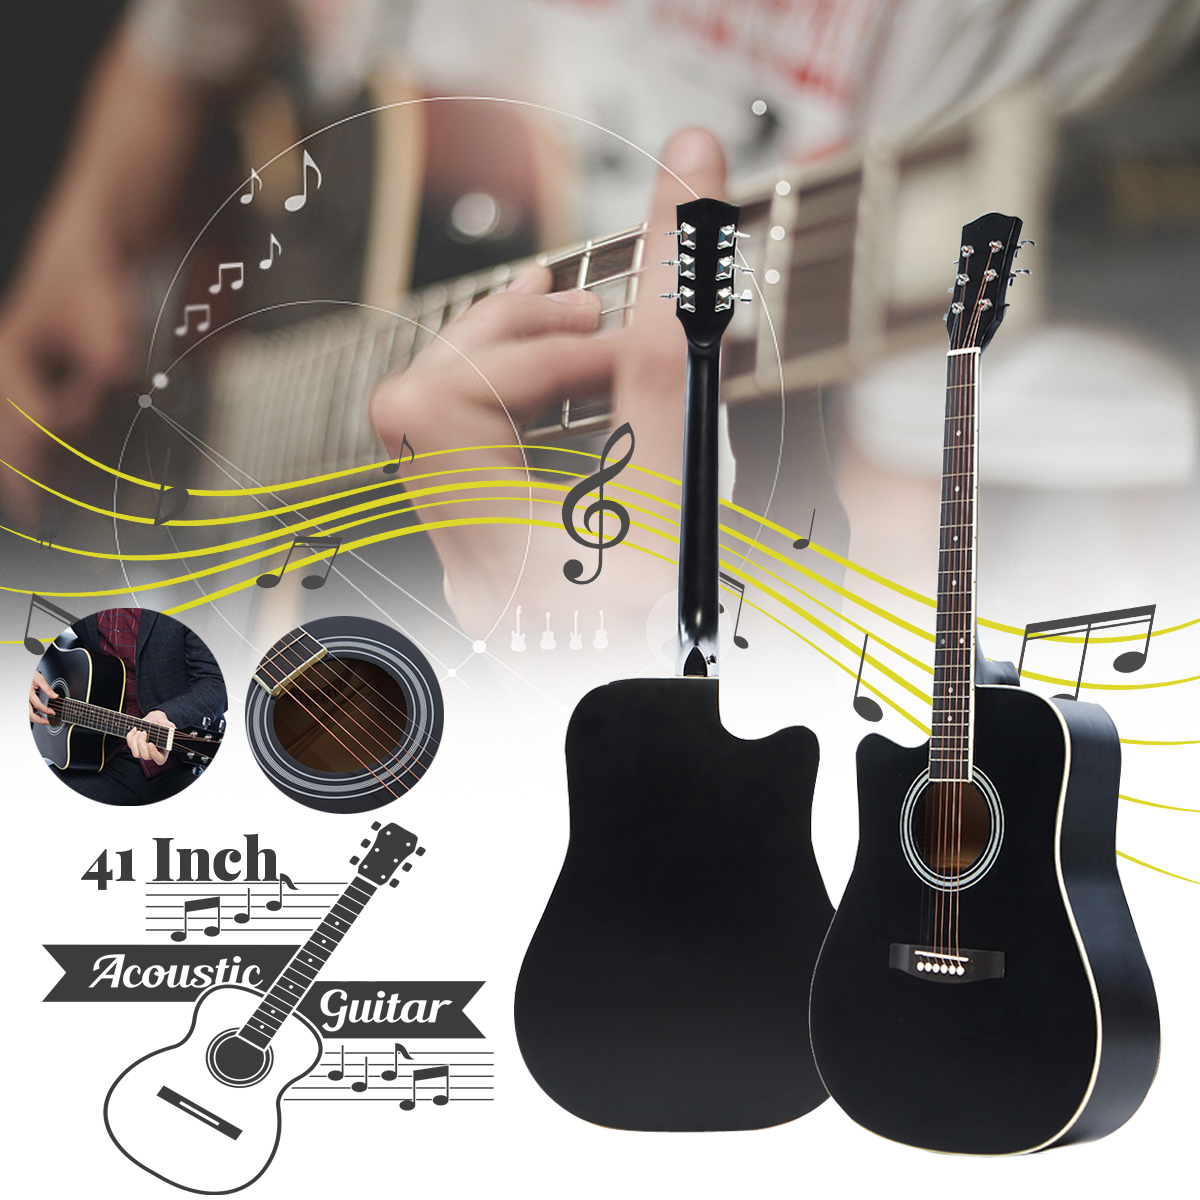 41 Inch Ballad Basswood Face Single Guitar Top Grade Single Board Acoustic Guitar With Original Guitar Accessory free shipping folk guitar 1st 2nd 3rd 4th 5th 6th single string on sale guitar accessories ballad guitar strings with packing